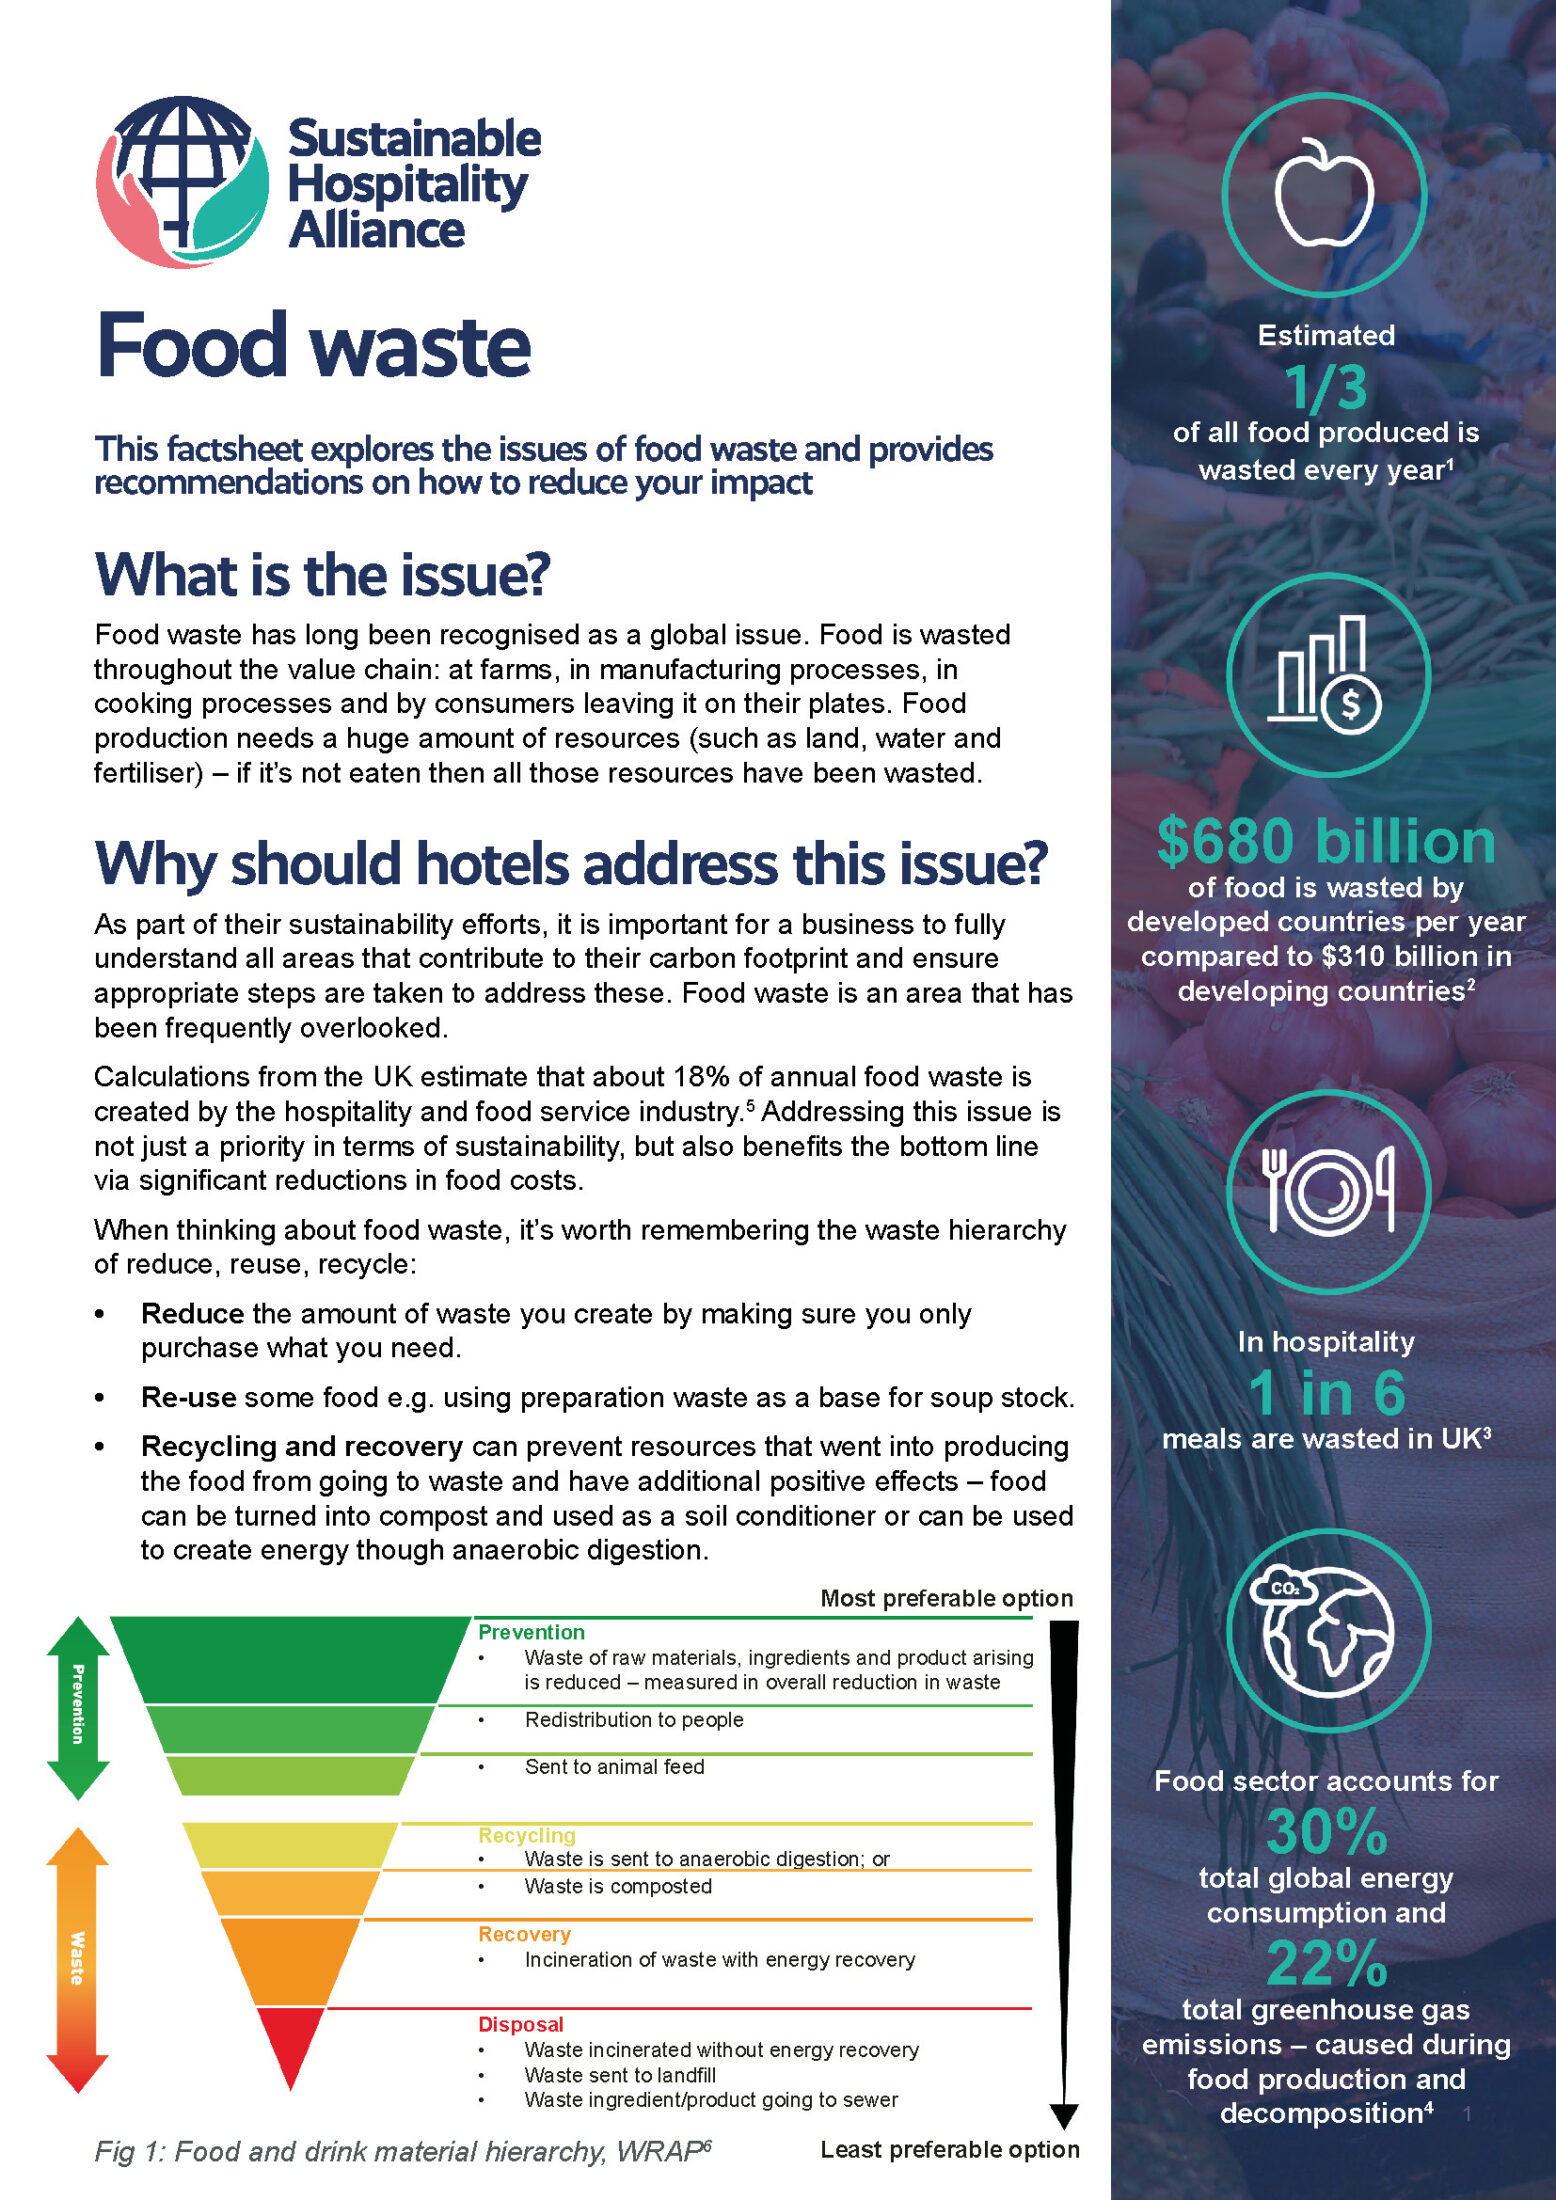 This factsheet explores the issues of food waste and provides recommendations on how to reduce your impact